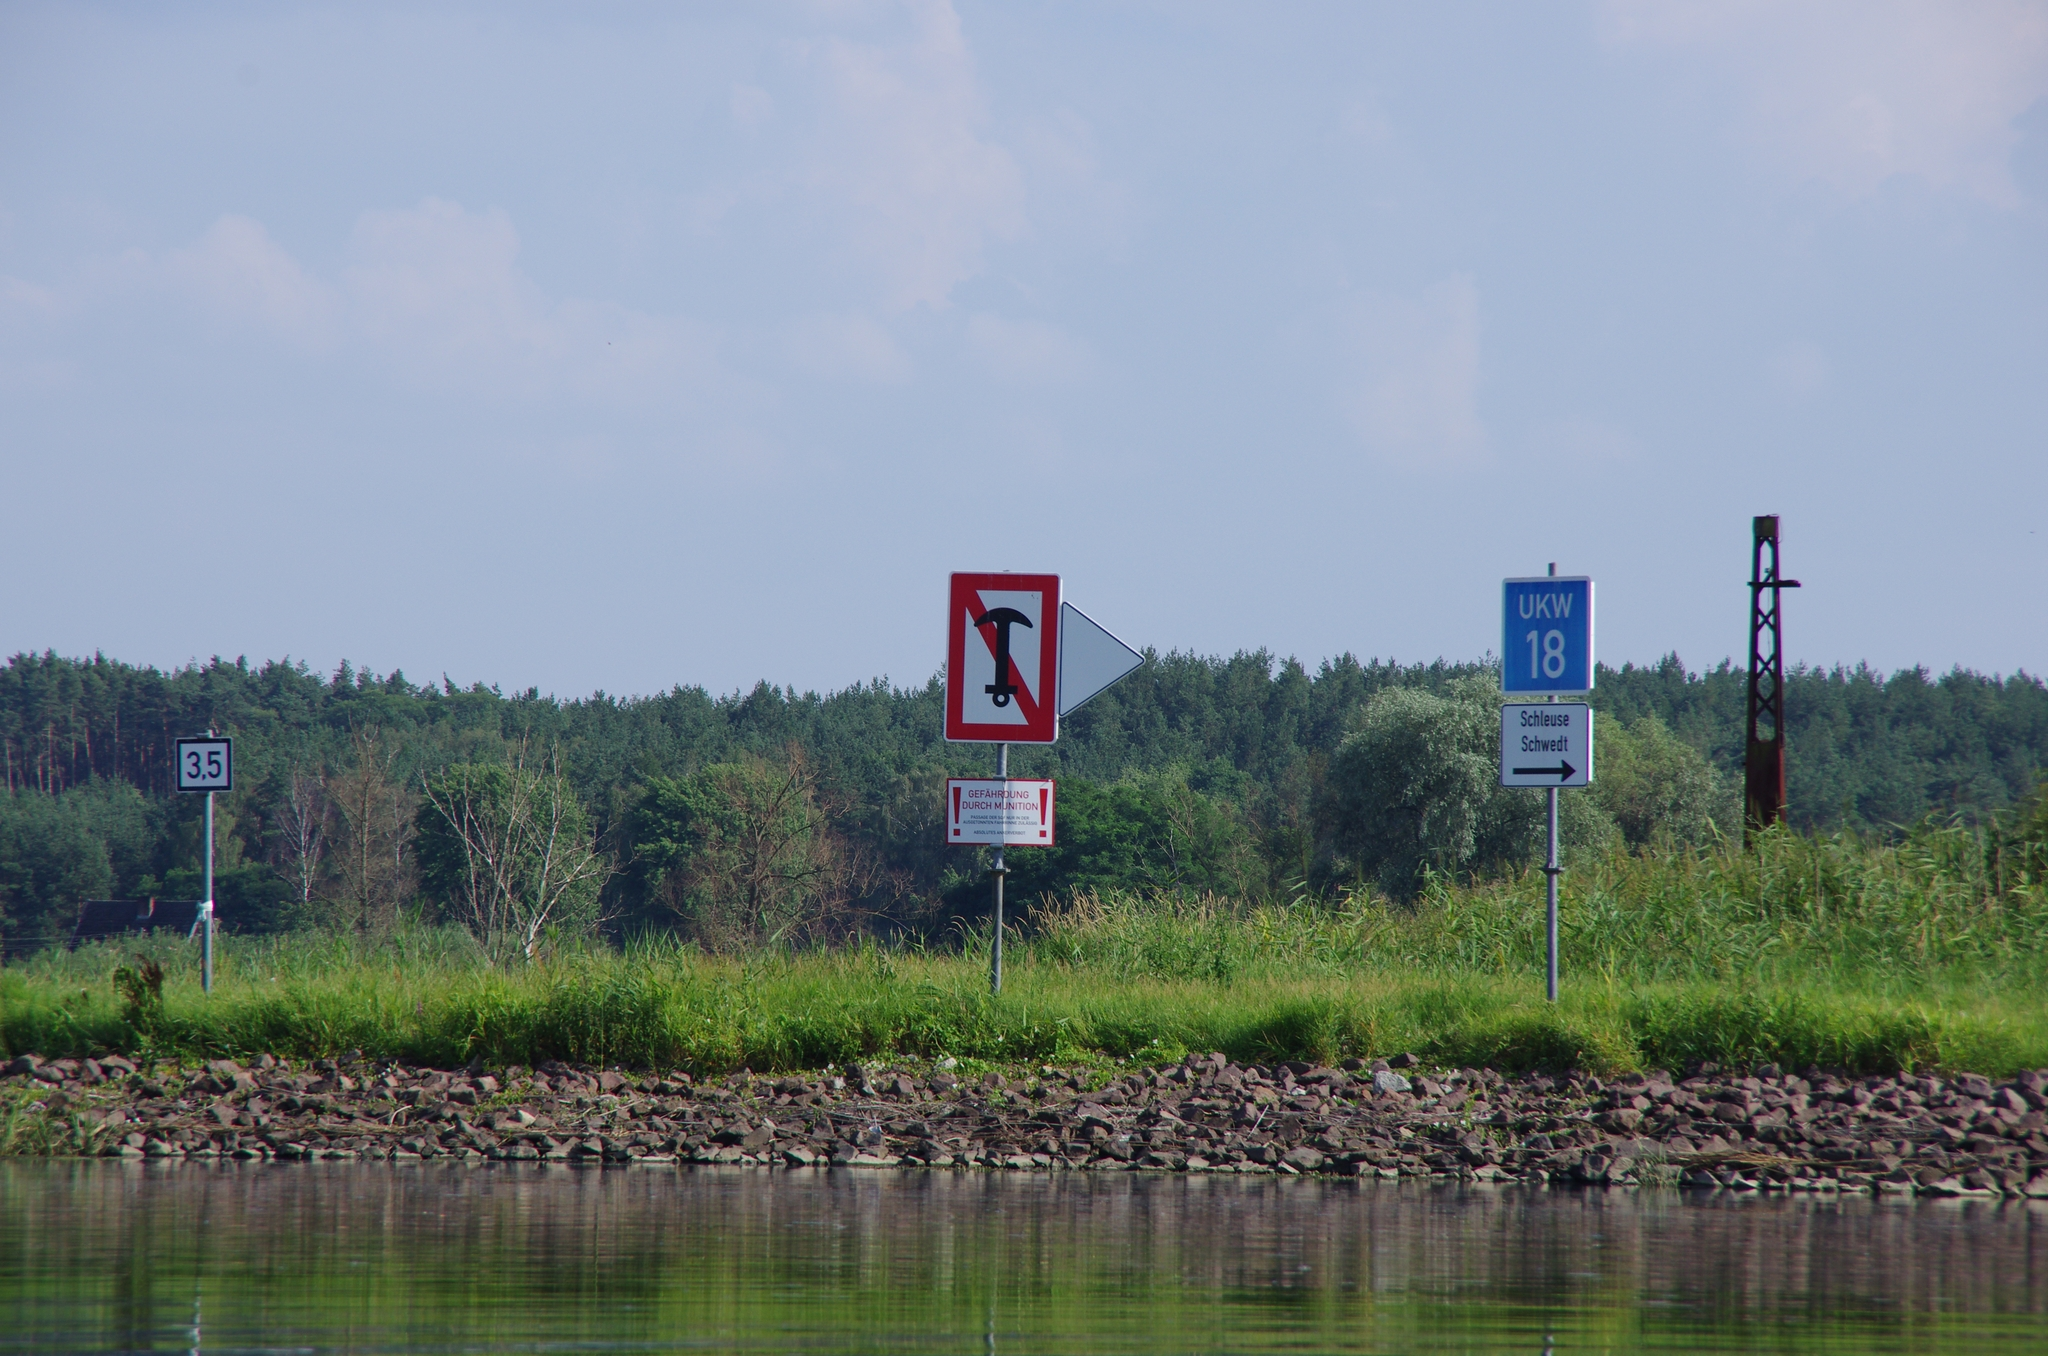 kayaking-odra-east-and-west_15-57-51_25-07-2016